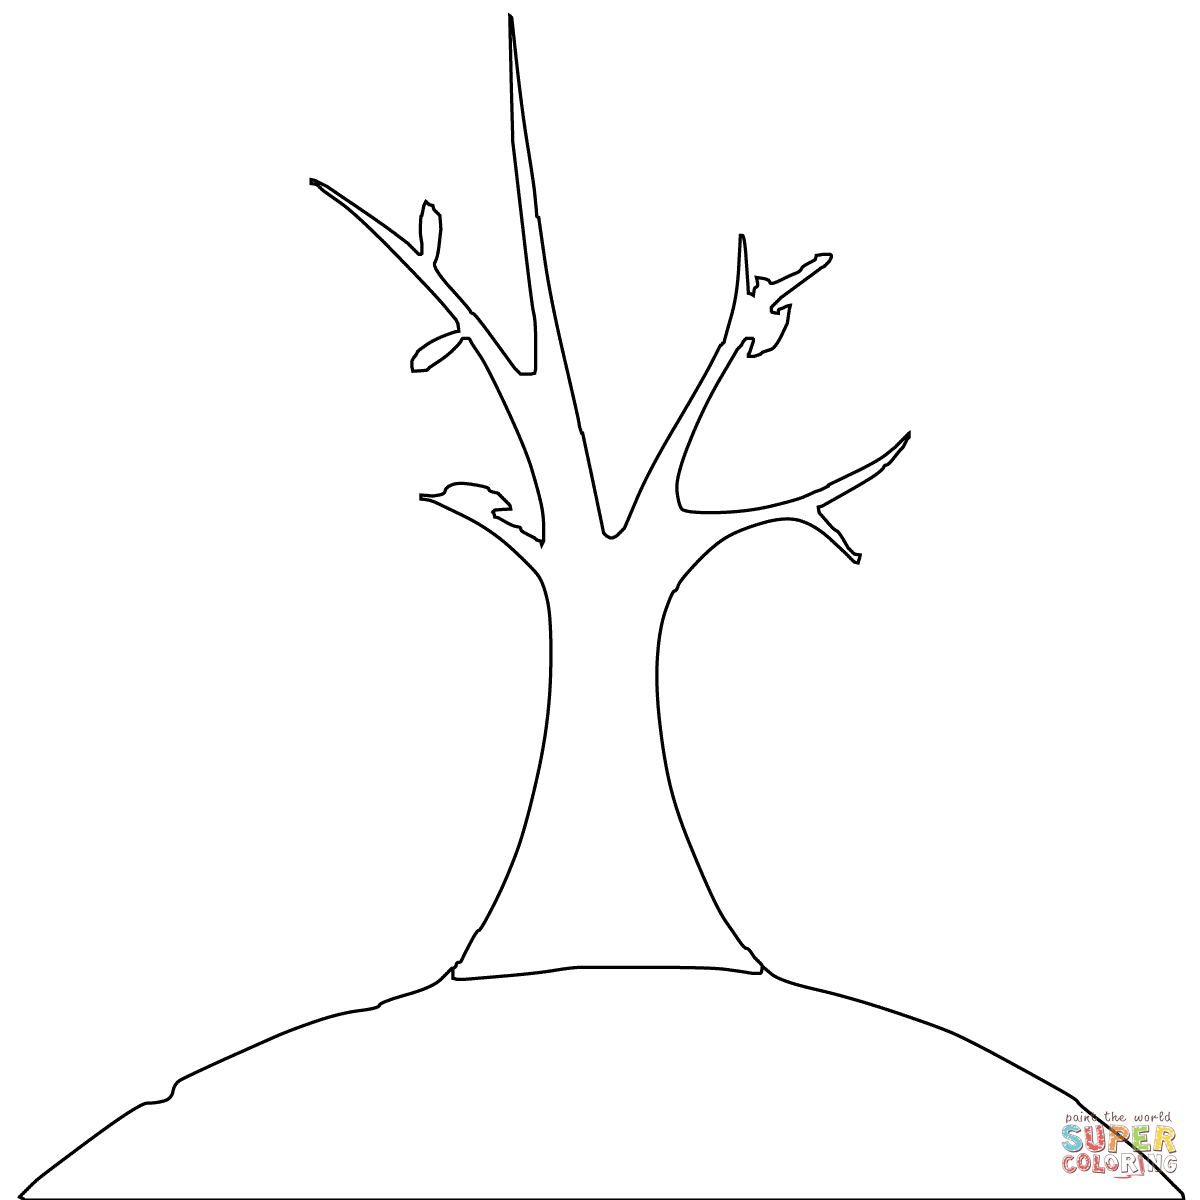 Roots Coloring Page At Getdrawings Com Free For Personal Use Roots